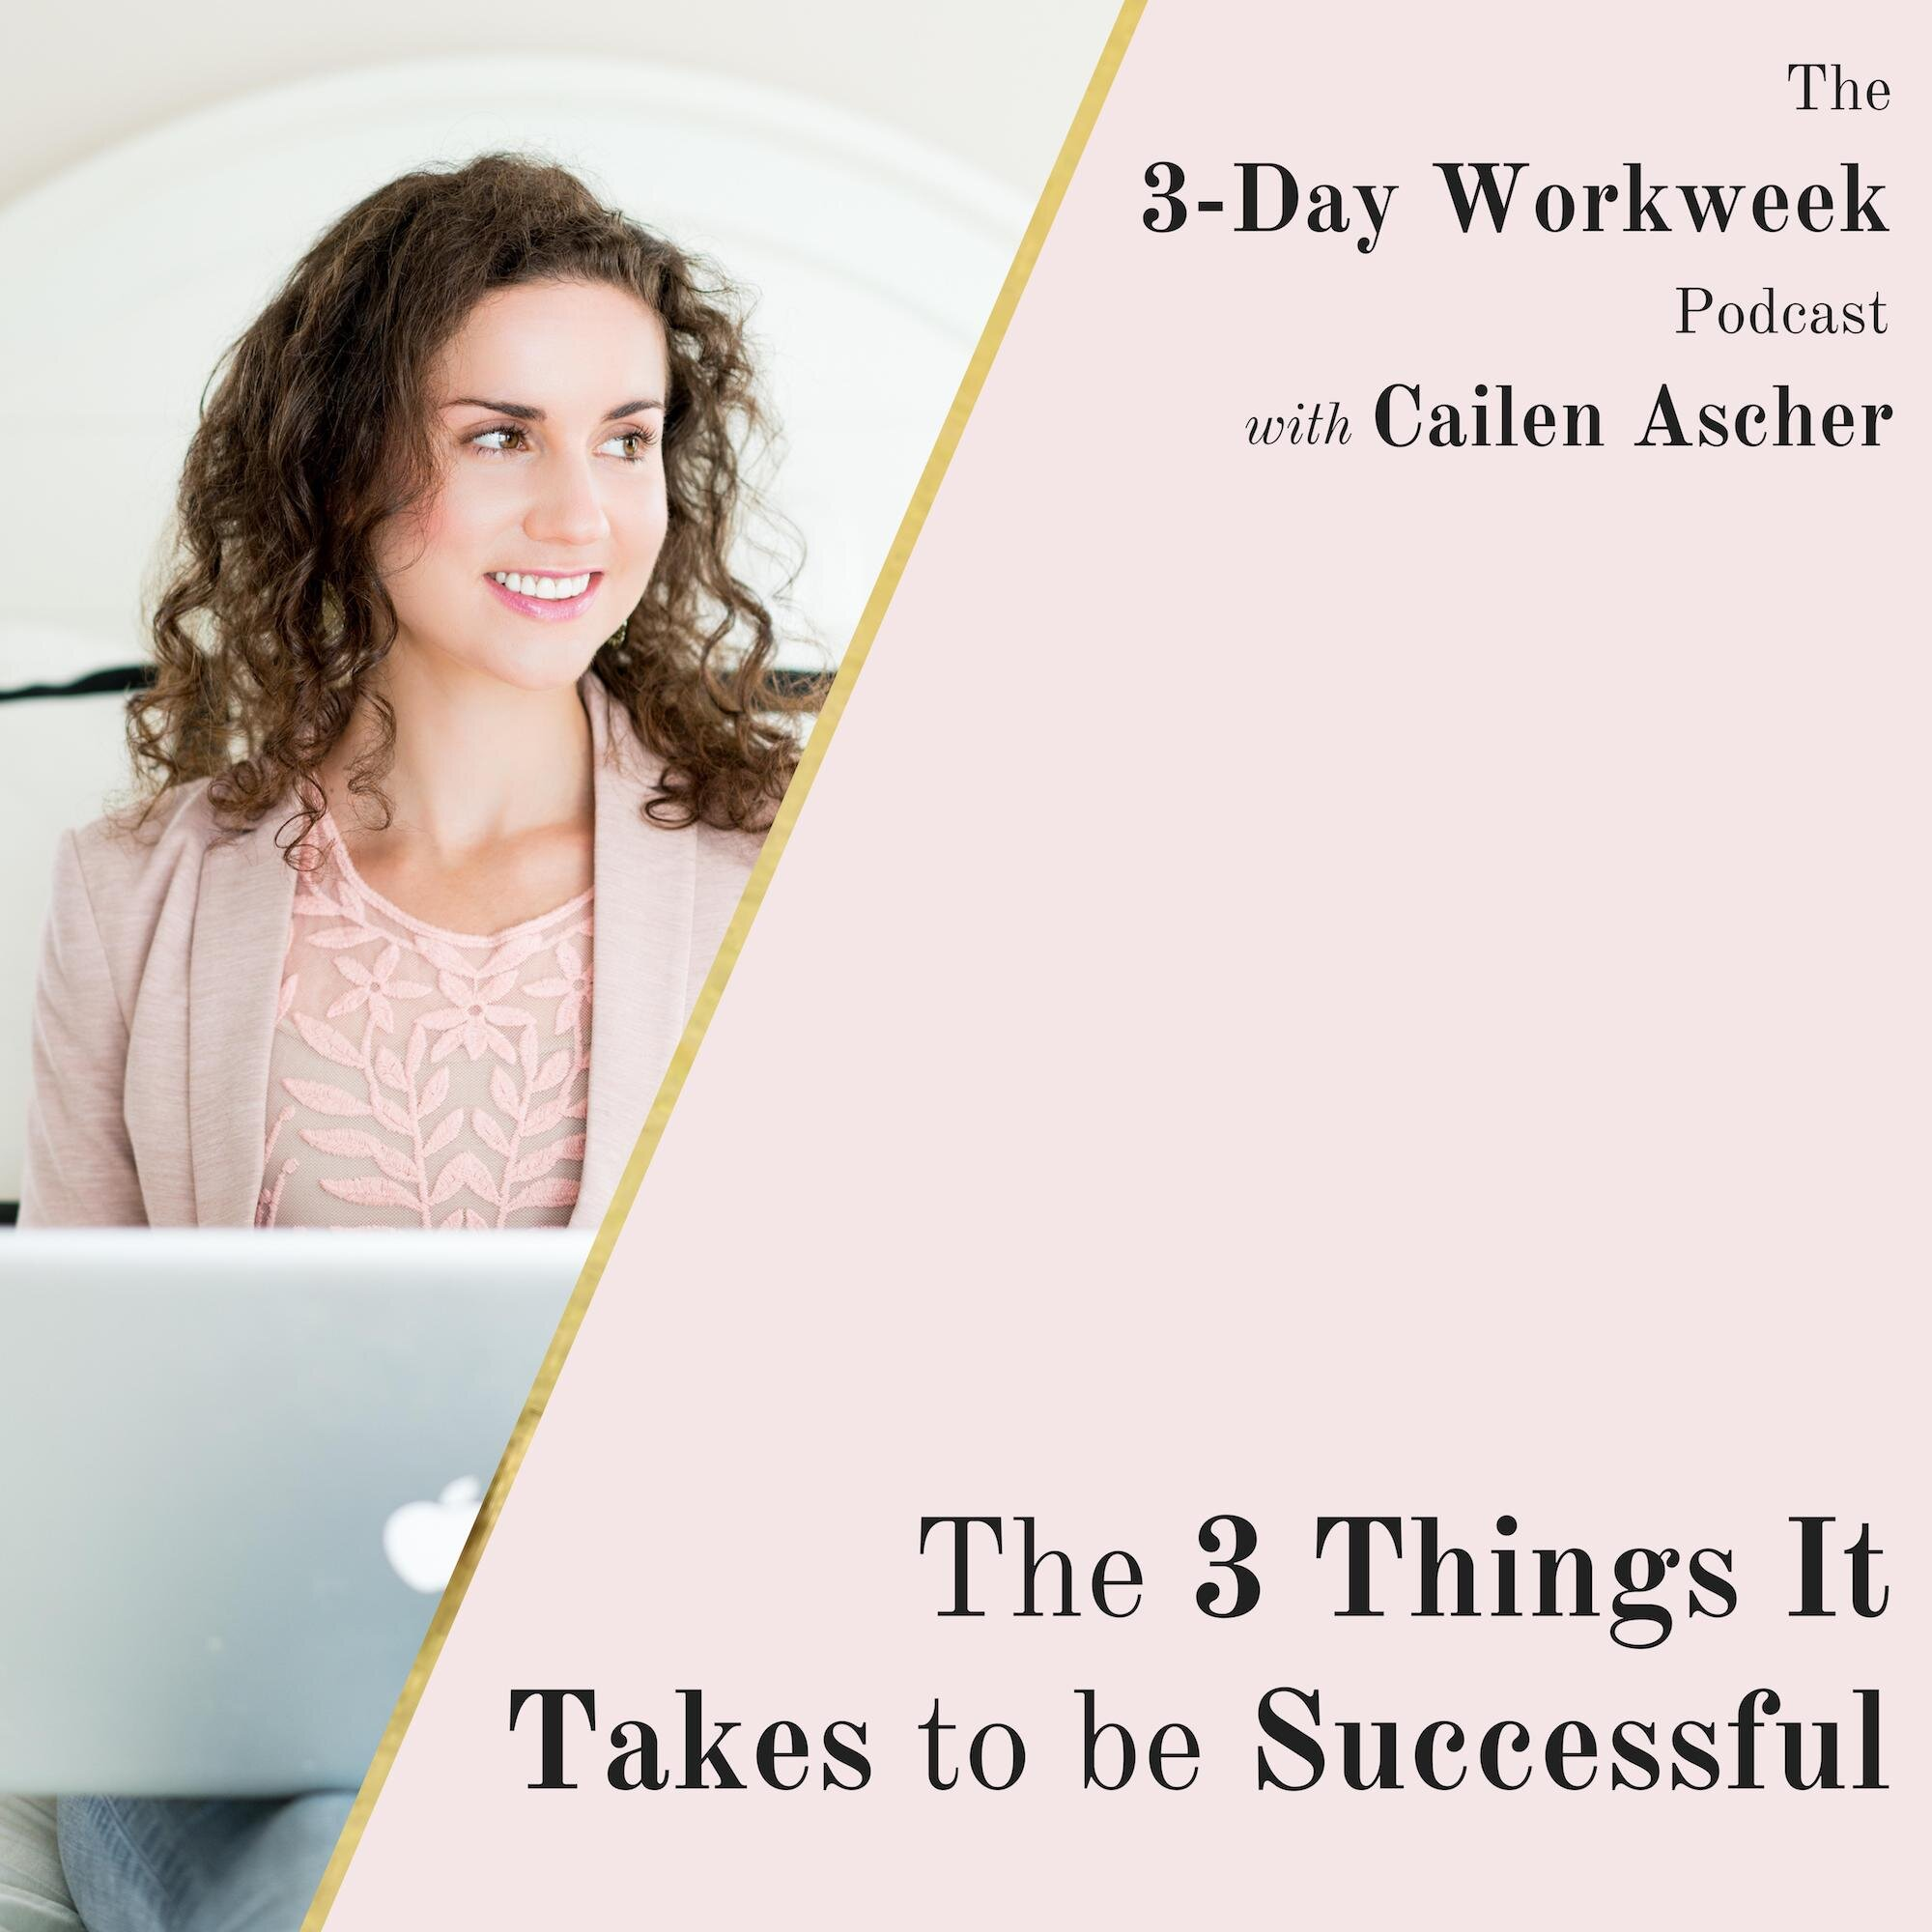 The 3-Day Workweek Podcast with Cailen Ascher - 2019-08-14 - You're the CEO of Your Life with Kelly Roach.jpg